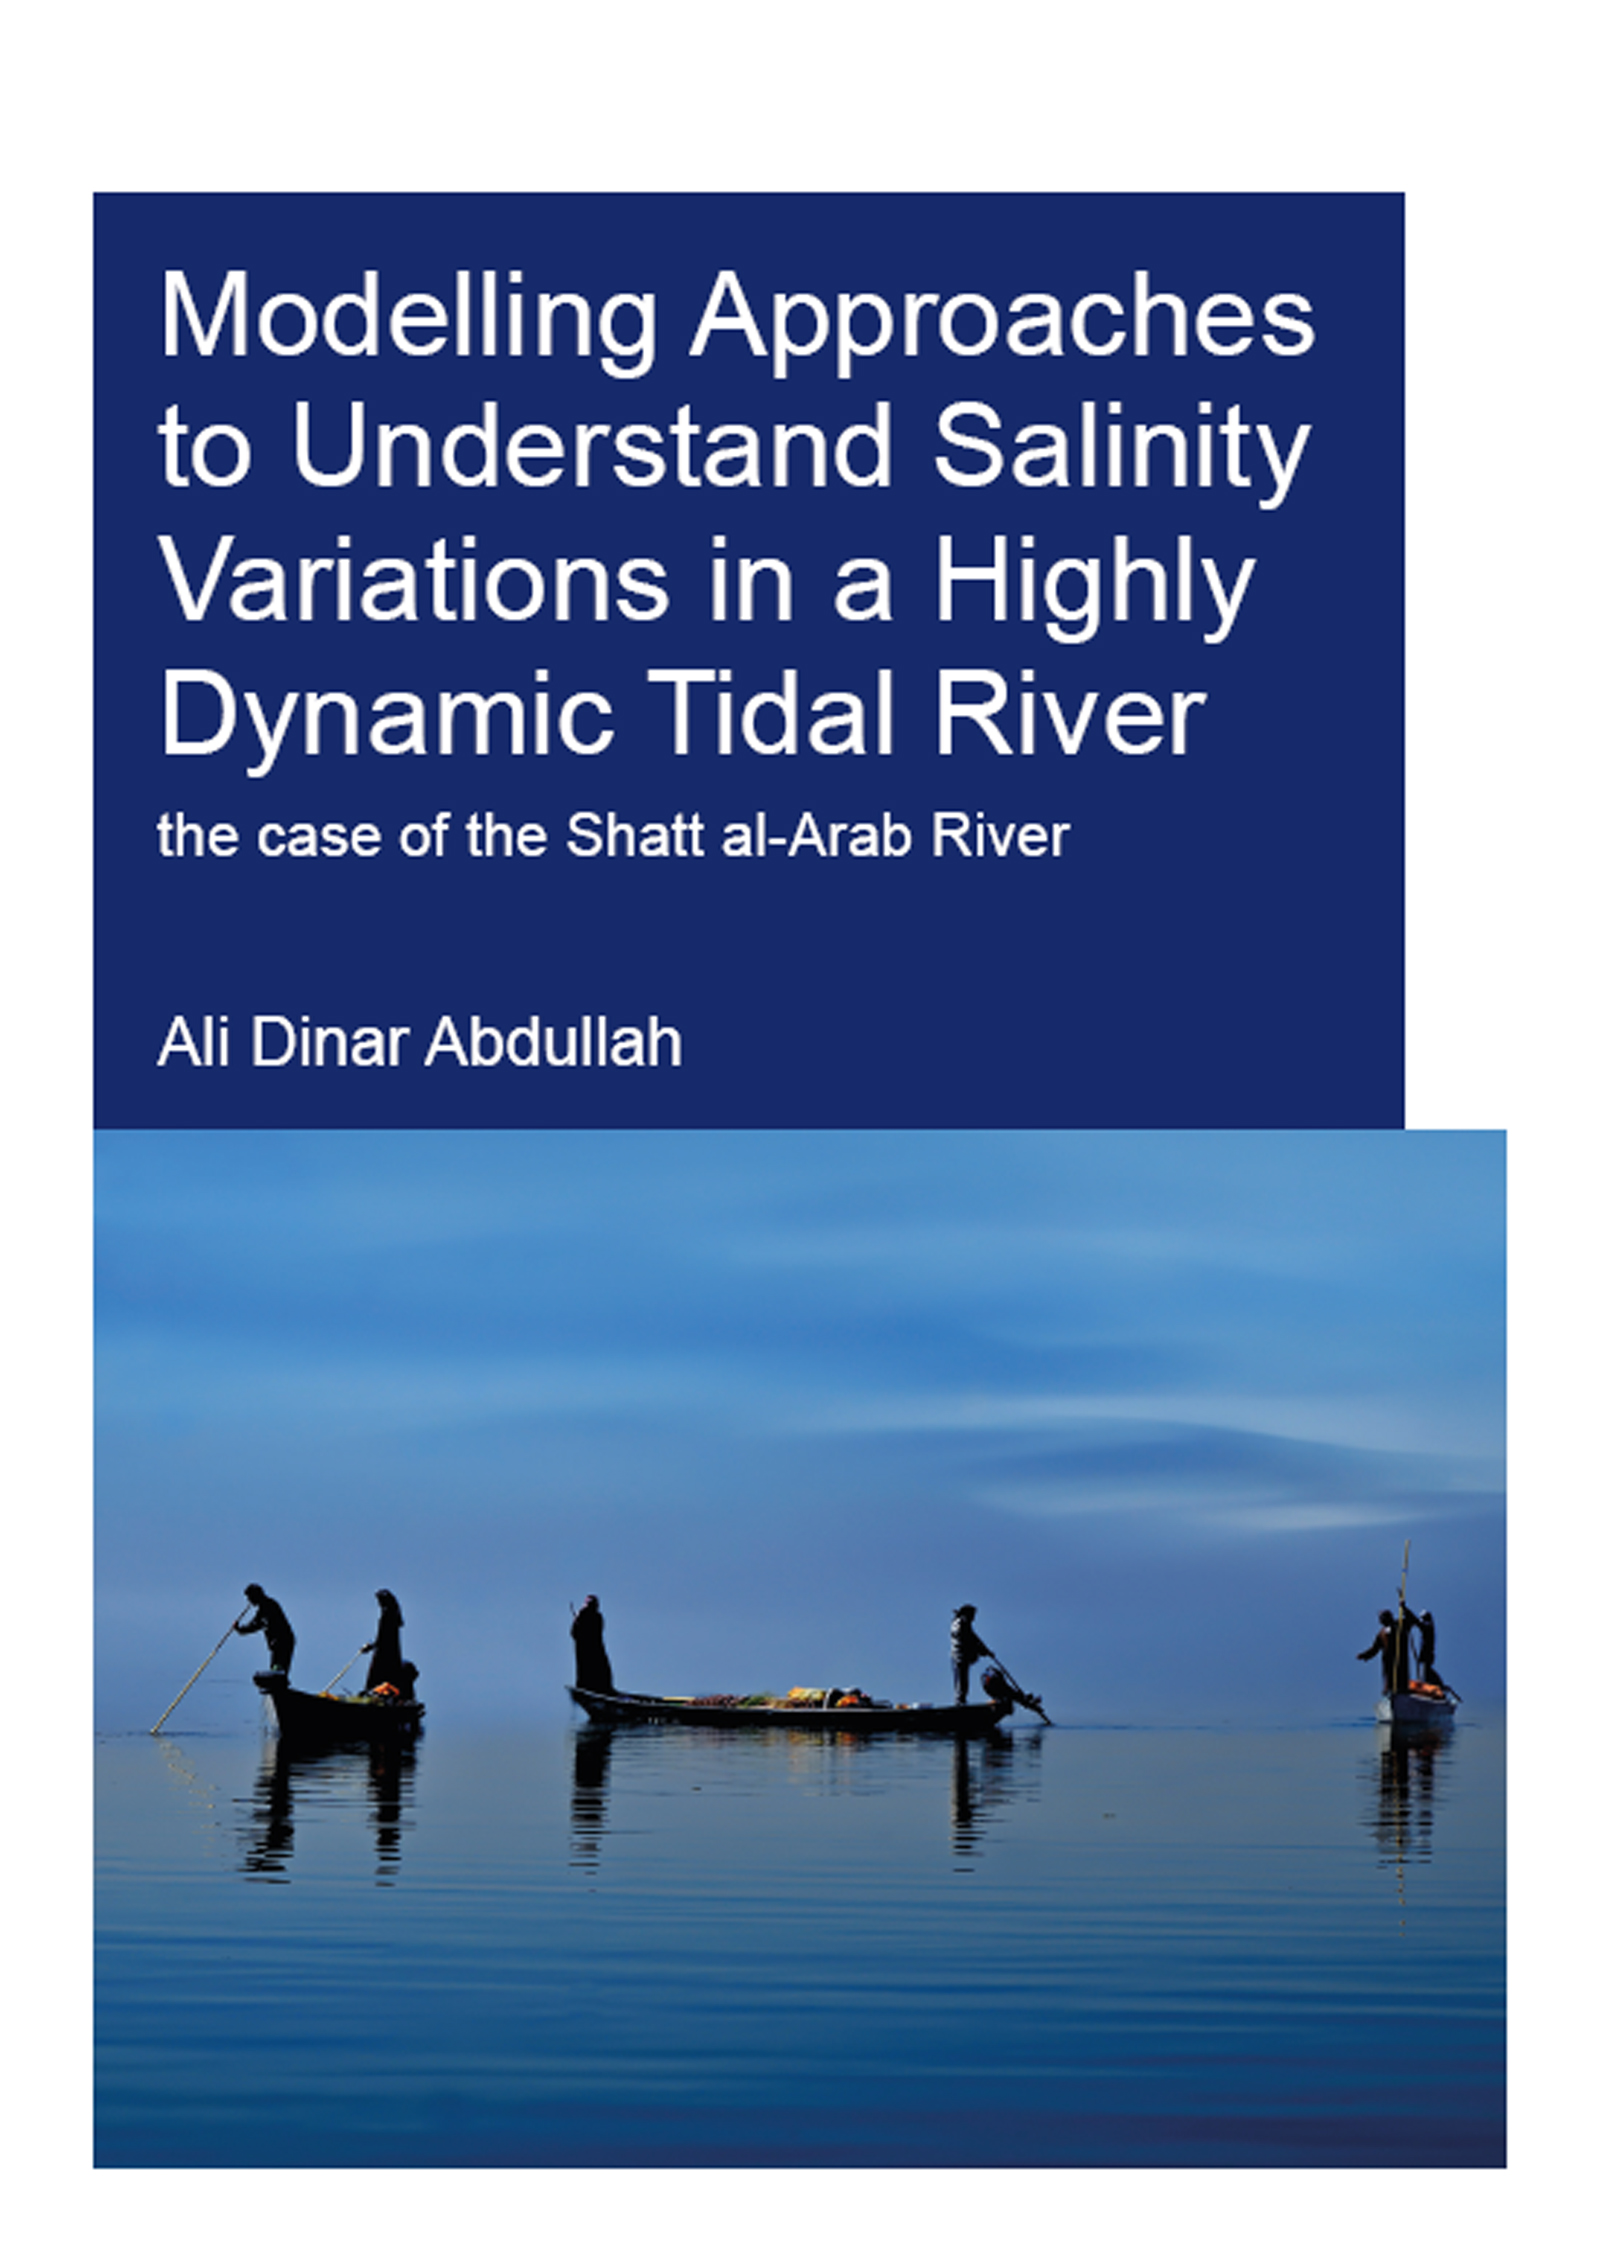 Modelling Approaches to Understand Salinity Variations in a Highly Dynamic Tidal River: The Case of the Shatt al-Arab River book cover